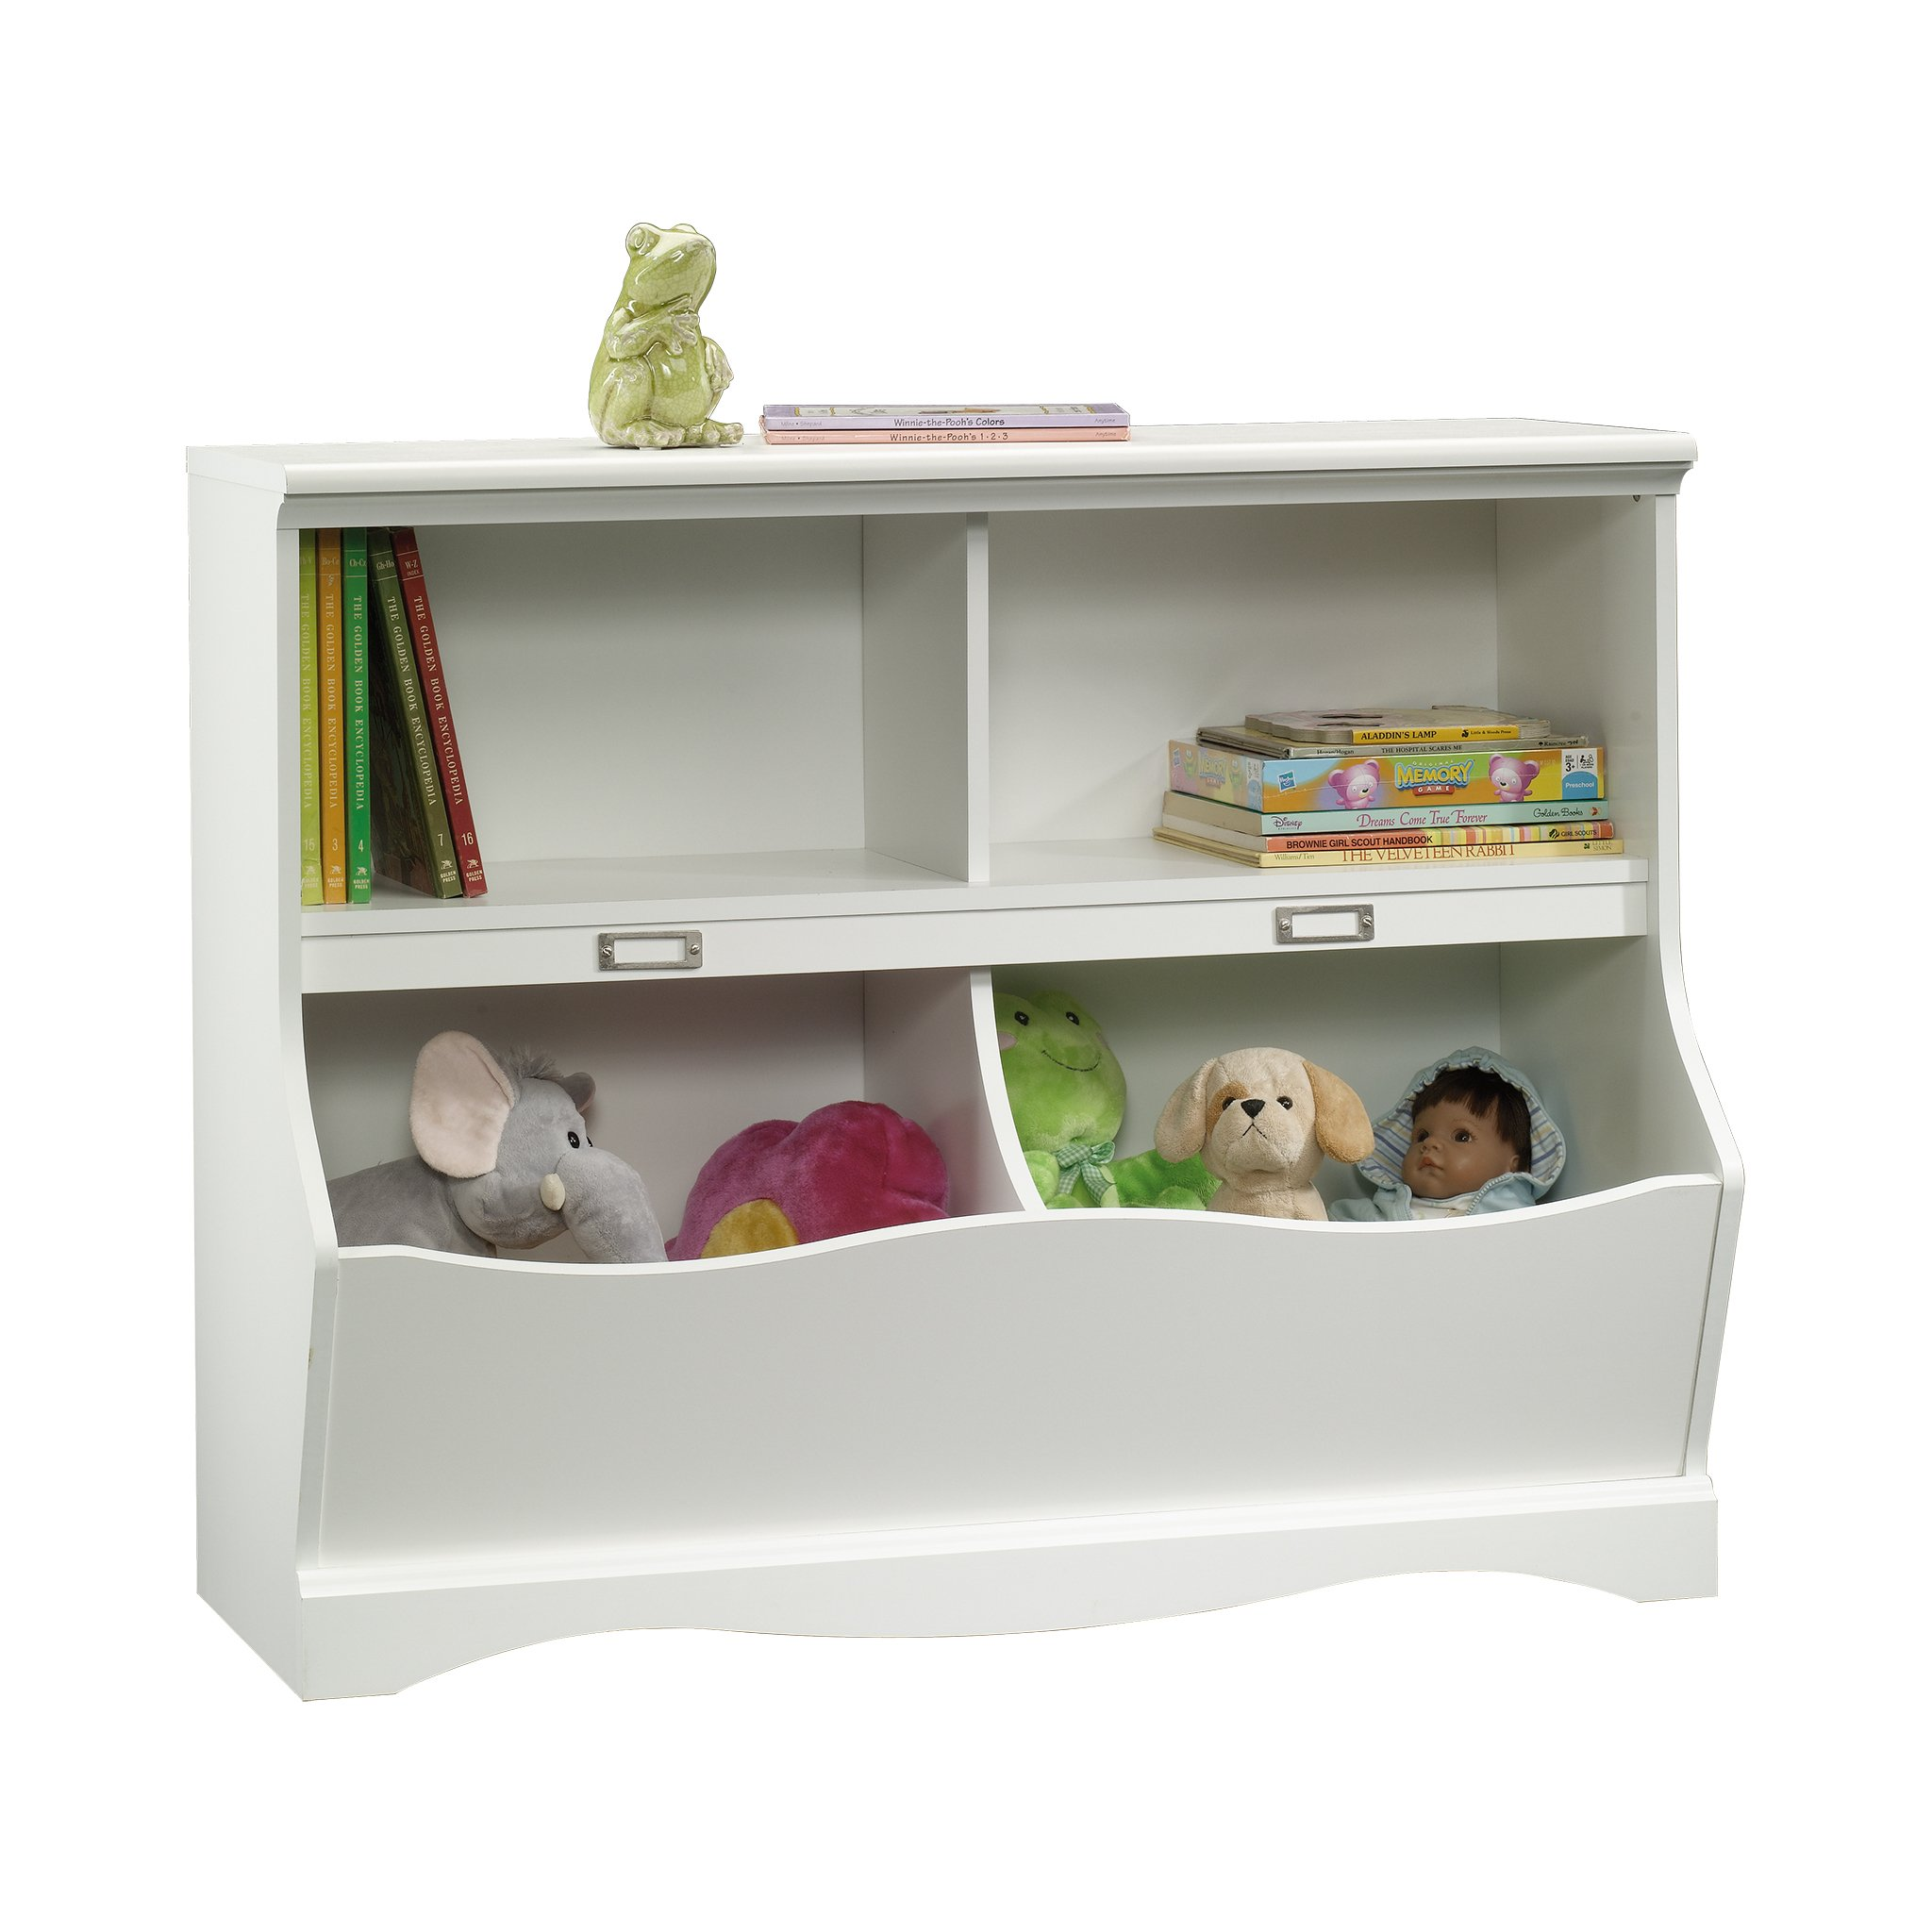 Sauder 414436 Pogo Bookcase/footboard, L: 41.10'' x W: 14.49'' x H: 32.84'', Soft White by Sauder